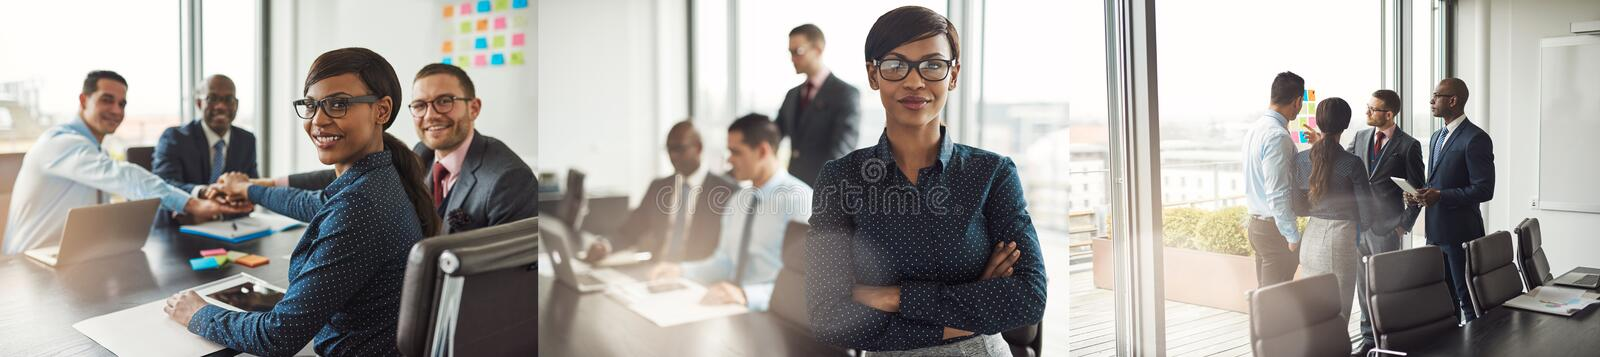 Collage of diverse businesspeople smiling while working in an office royalty free stock photo